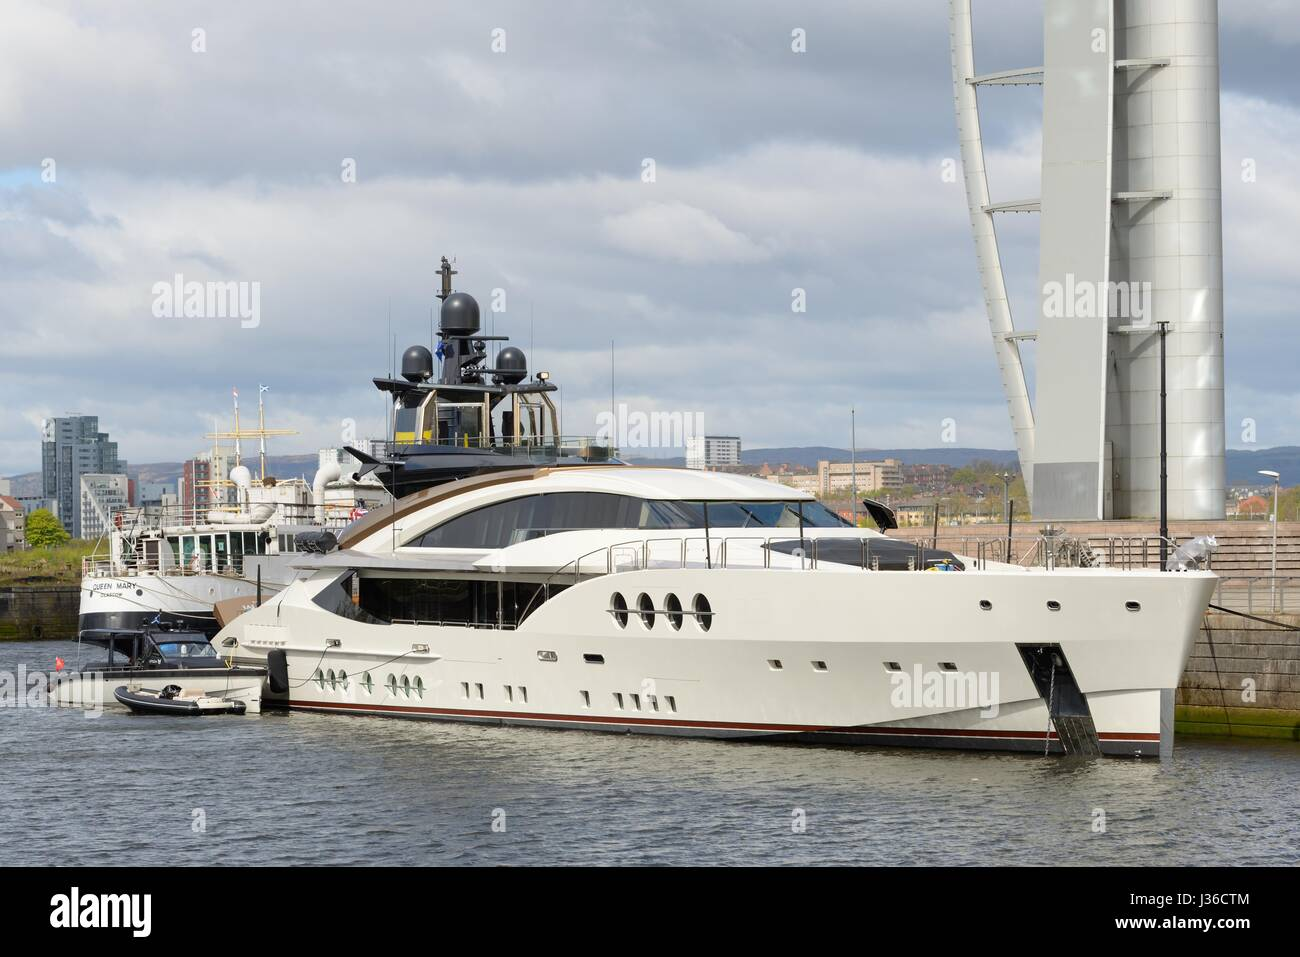 The Superyacht, Lady M, which belongs to Russian billionaire Alexei Mordashov, docked at the Canting Basin, North - Stock Image